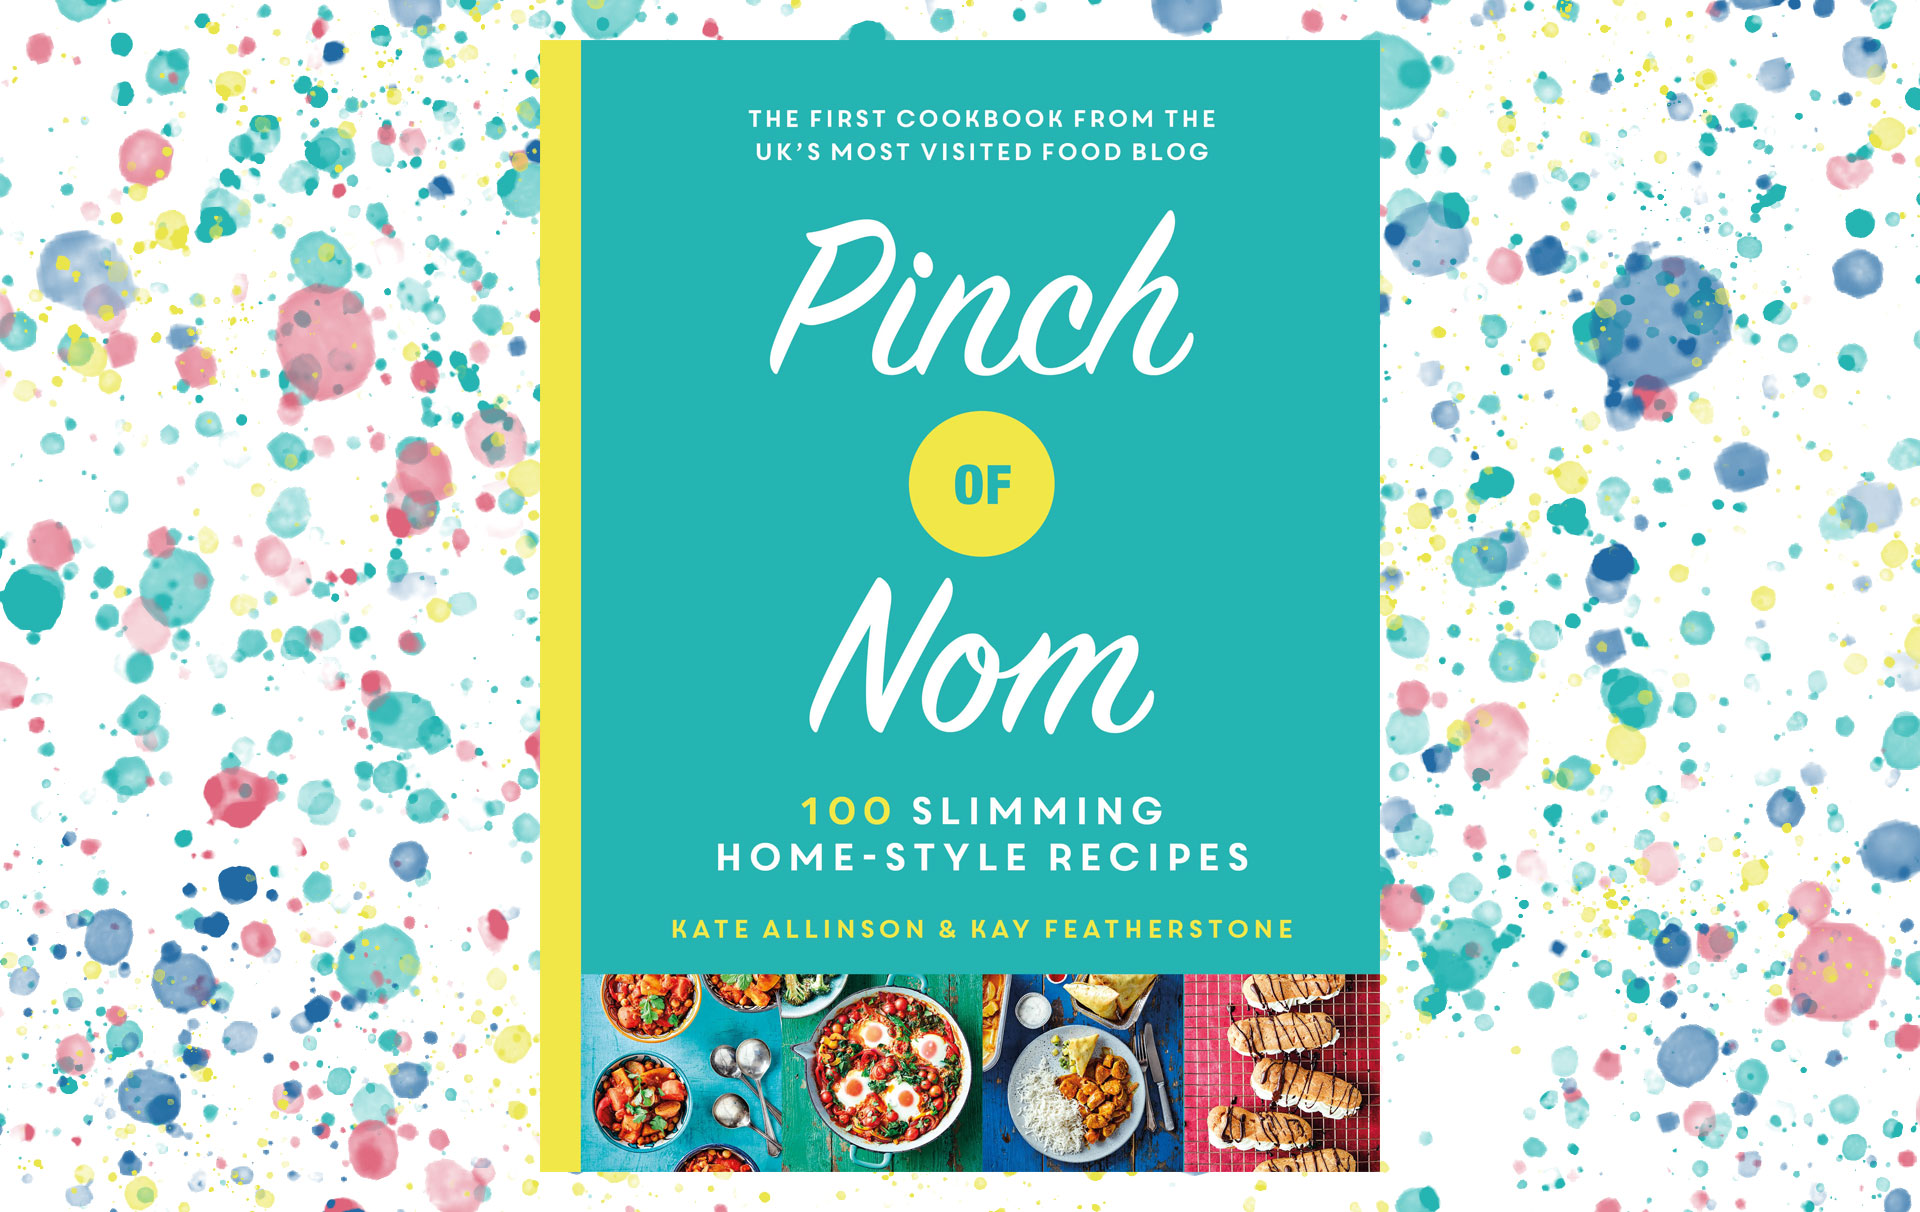 Pinch Of Nom Everything You Need To Know About The New Cookbook